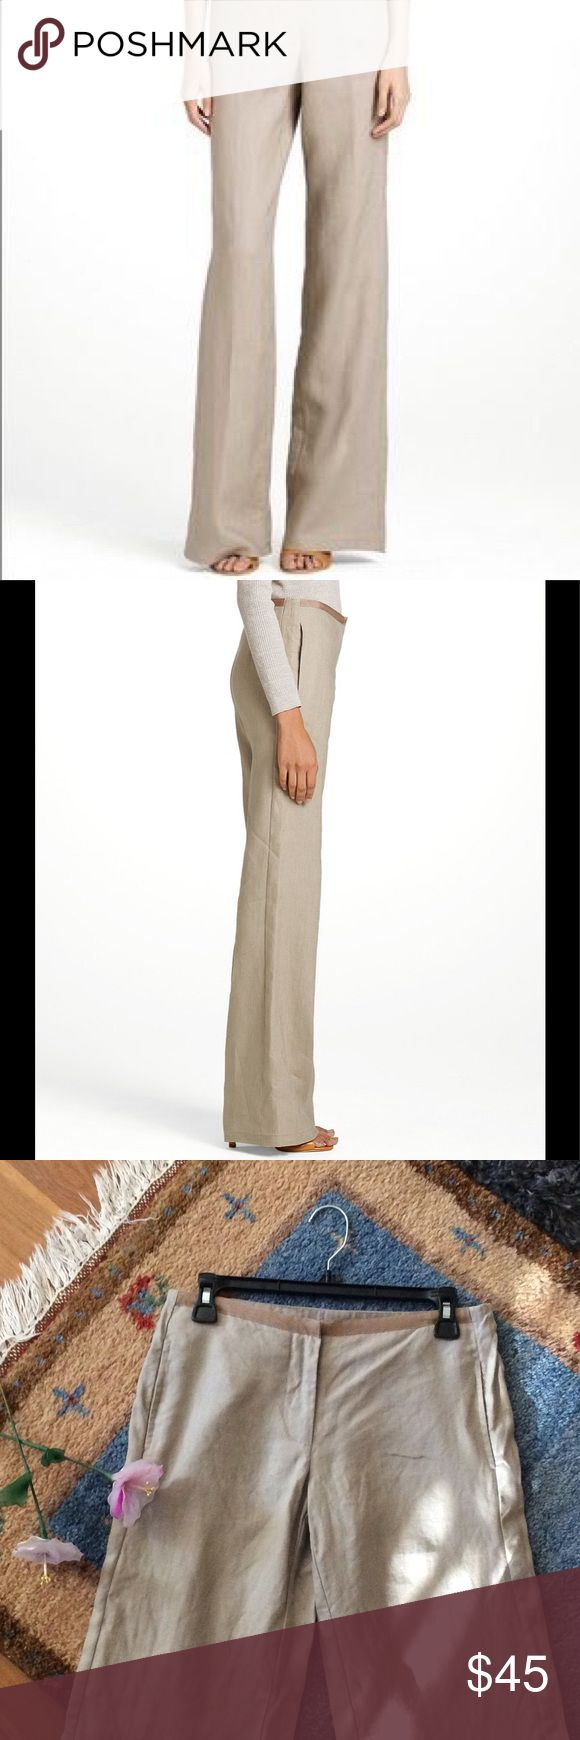 Tory Burch Monique Linen Trouser Pant size 2 Tory Burch Monique beige linen wide leg trouser pant size 2.  Excellent condition.  100% linen.  Flat lay: 14.5 inch waist, 8.25 inch front rise, 19 inch hip, 33.5 inch inseam. Tory Burch Pants Trousers